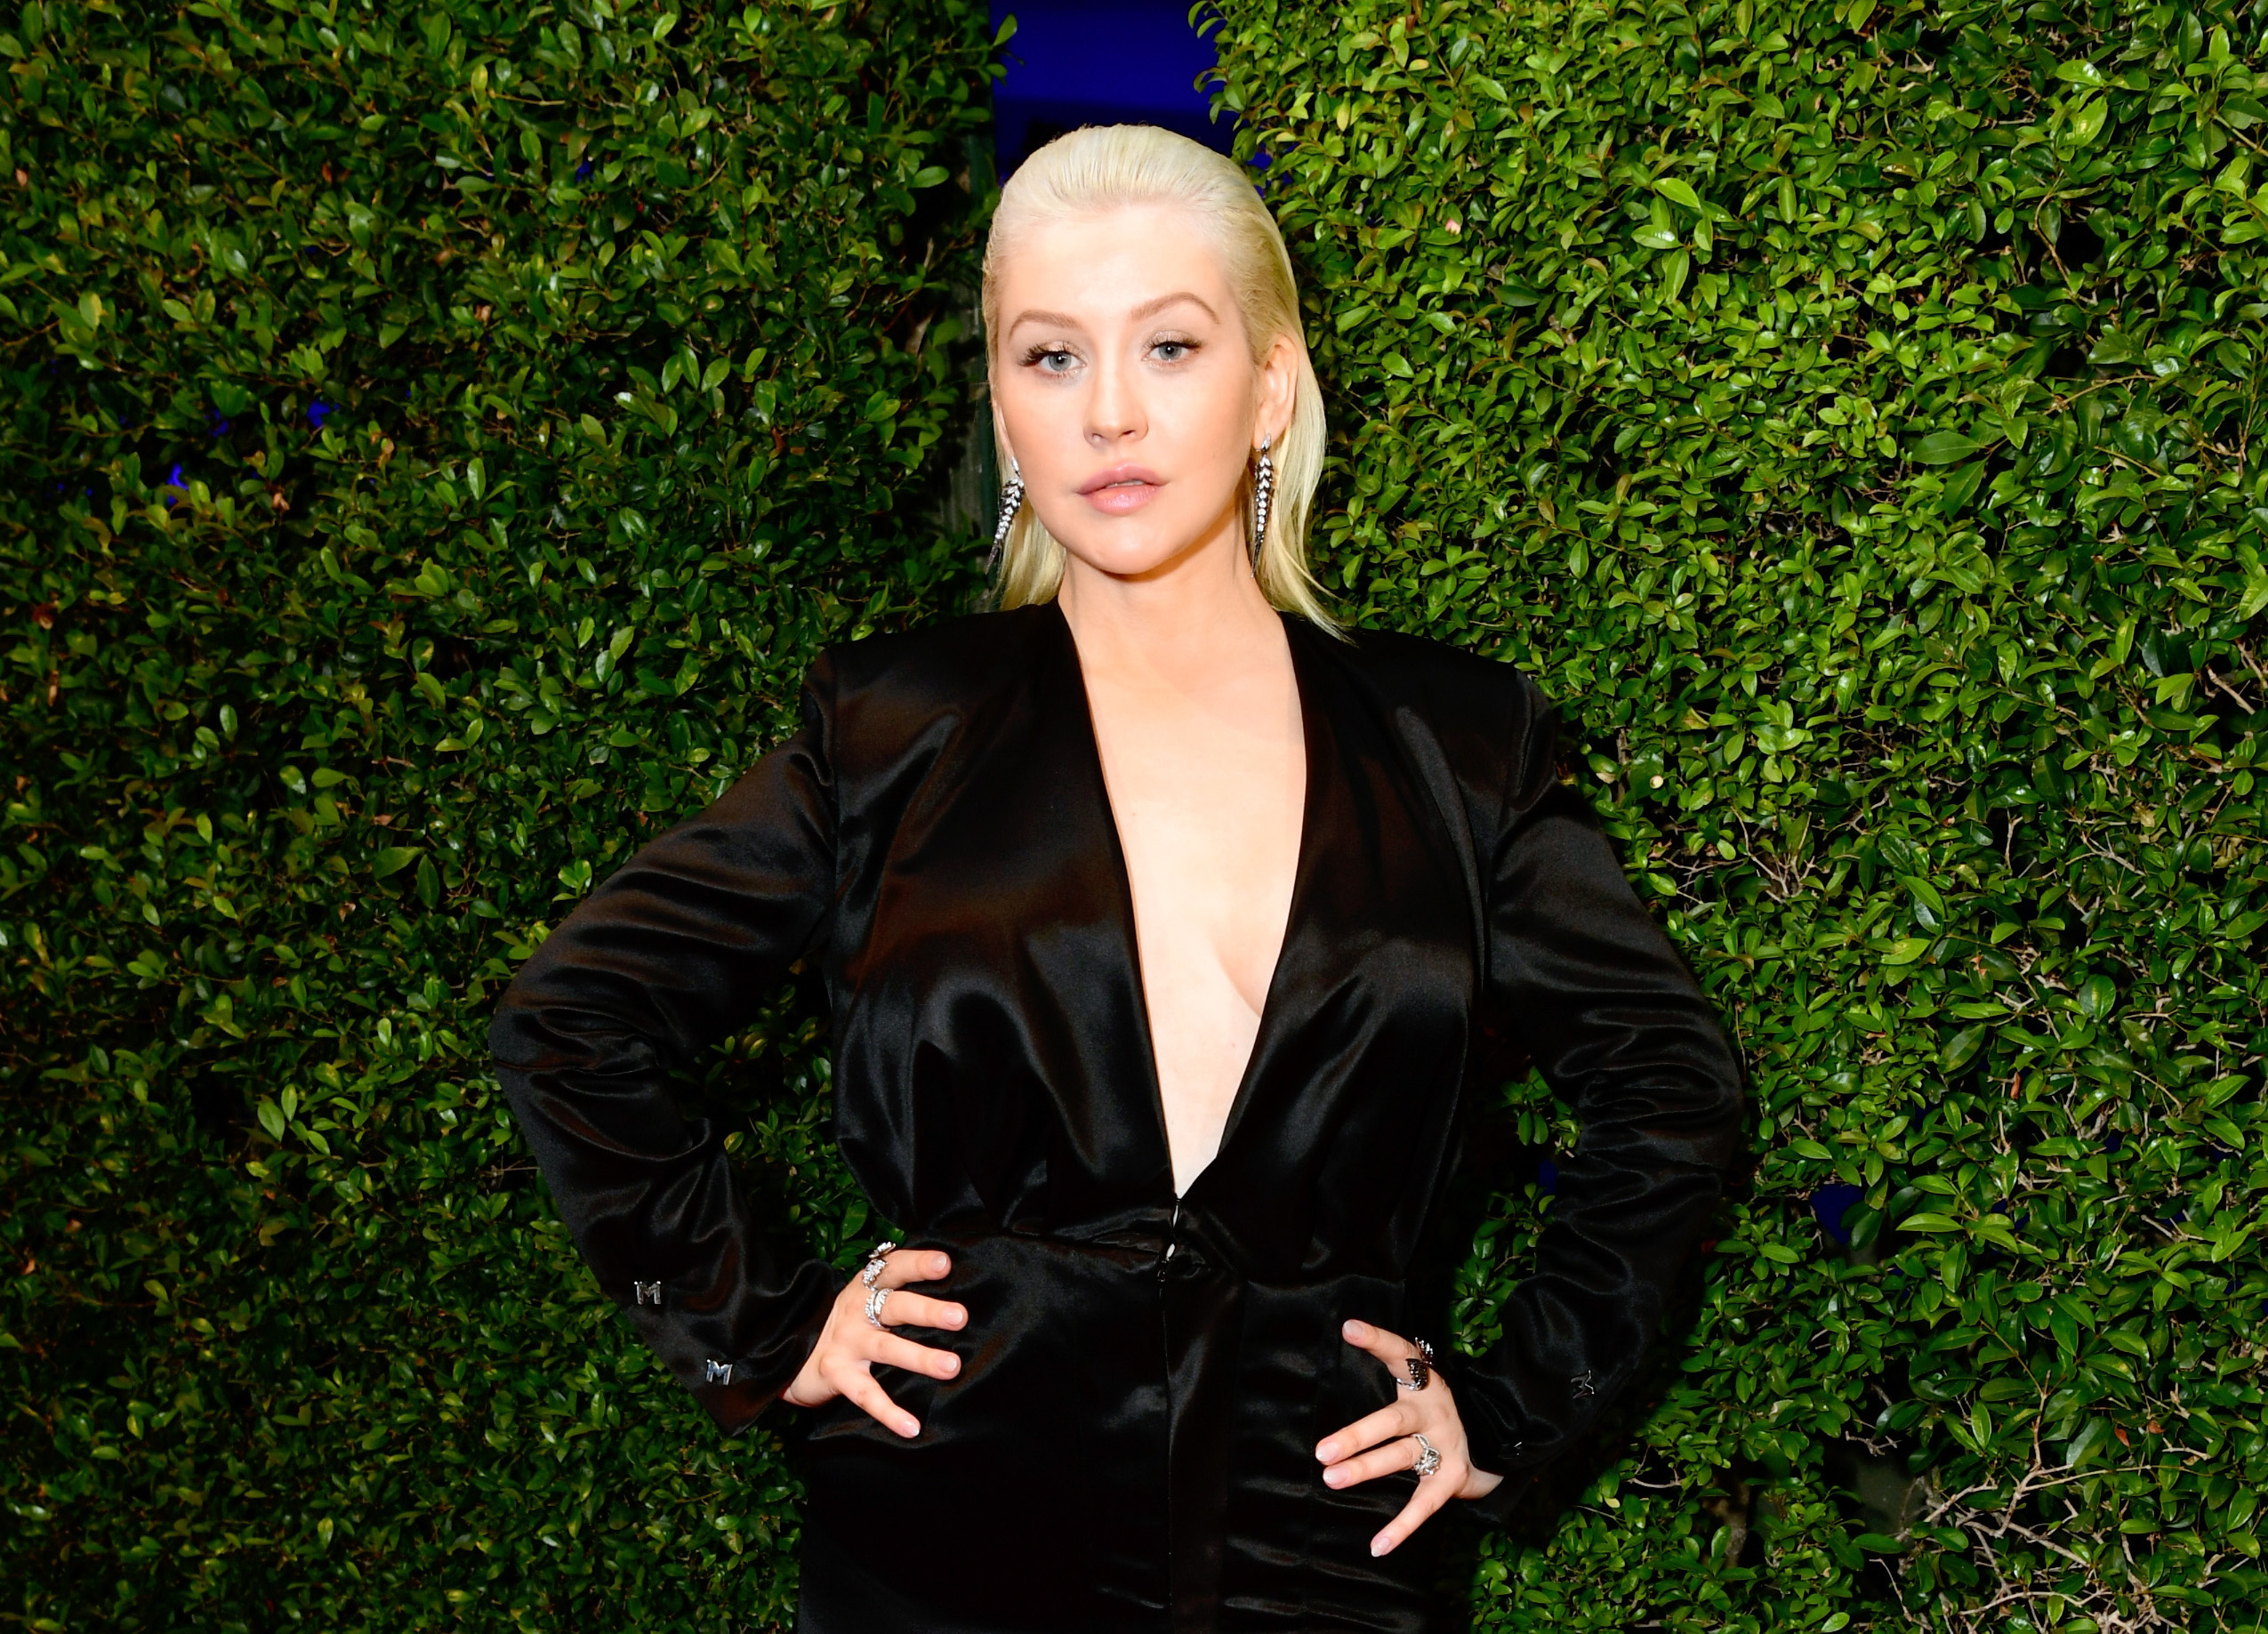 Christina Aguilera's daughter is basically a smaller mirror image of her mom